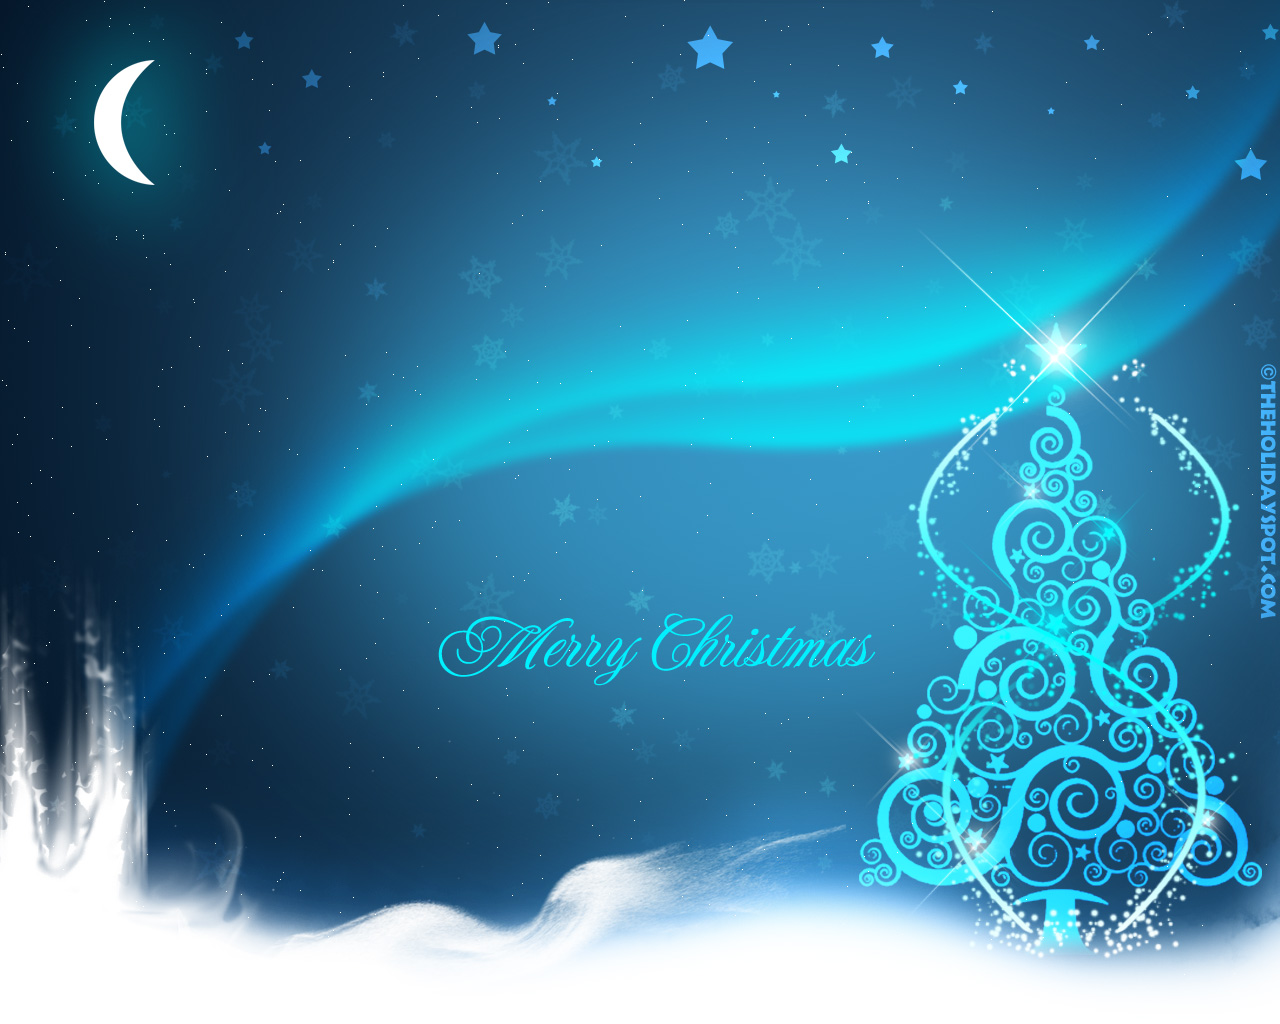 PicturesPool Happy Christmas 2013 Merry Xmas Wallpapers 1280x1024